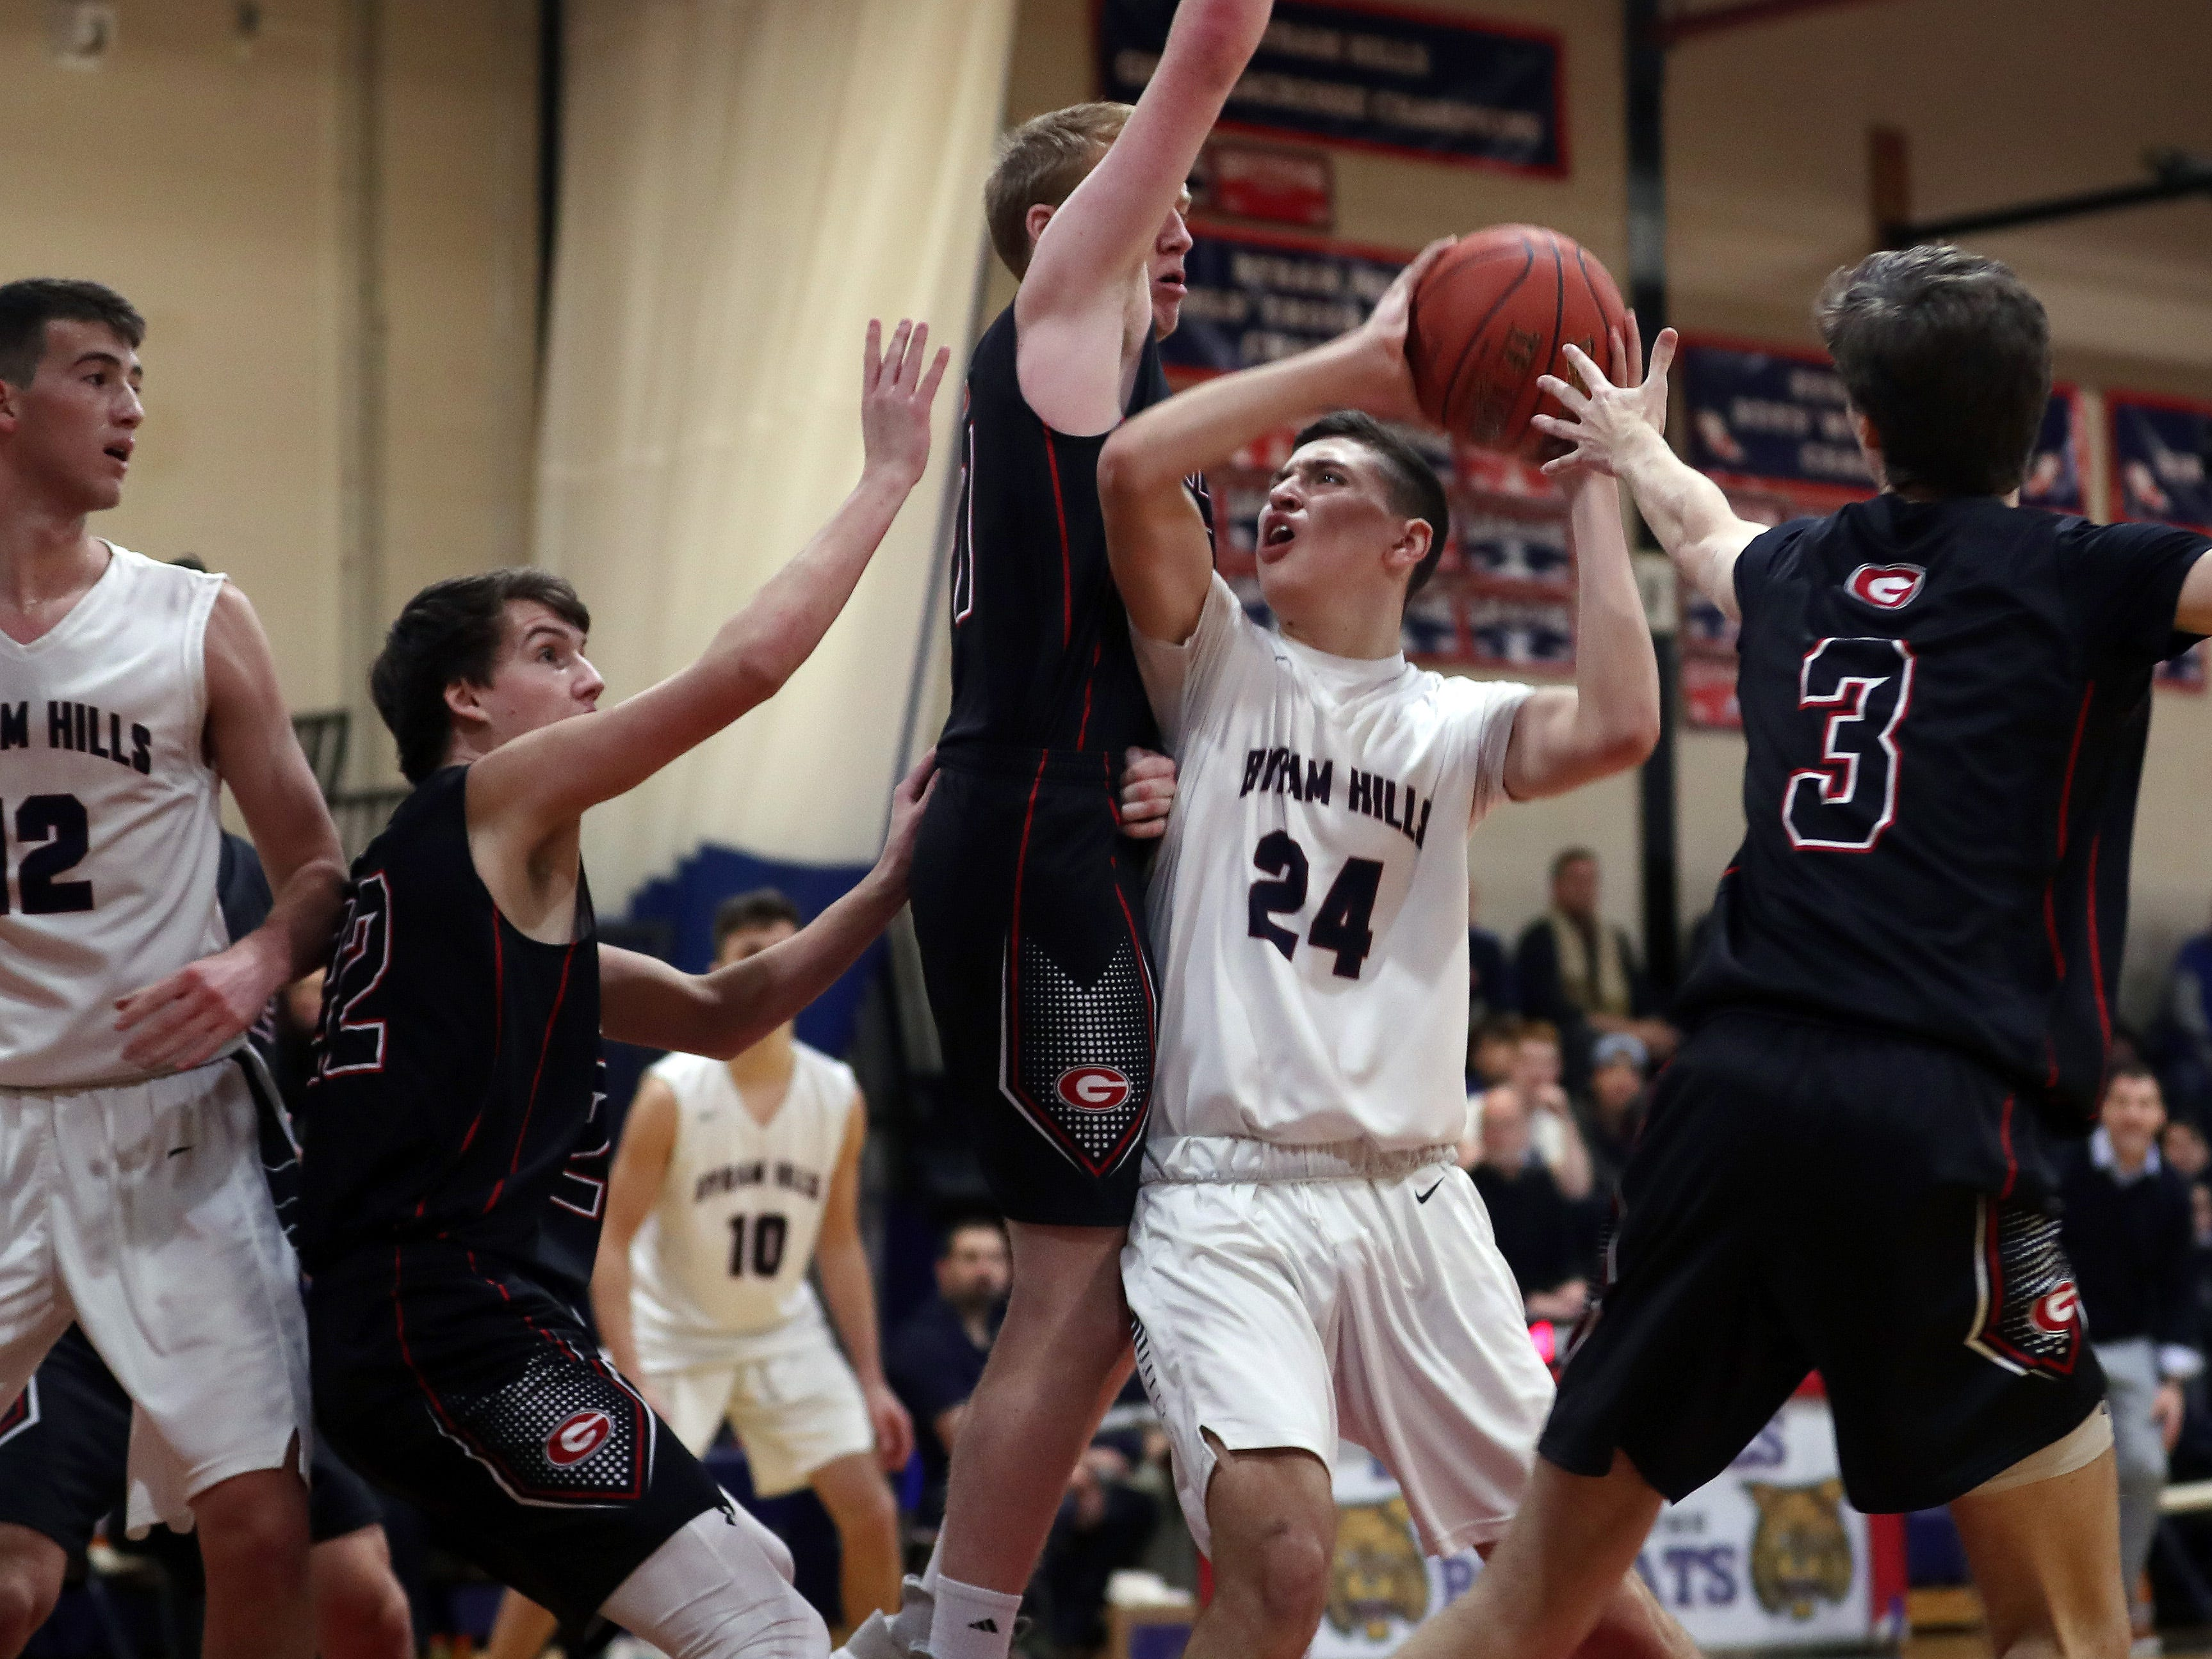 Byram Hills Mike Parrotta (24) drives to the basket in front orf Rye's Thomas Flaherty (21) during boys basketball action at Byram Hills High School in Armonk Jan. 10, 2019.